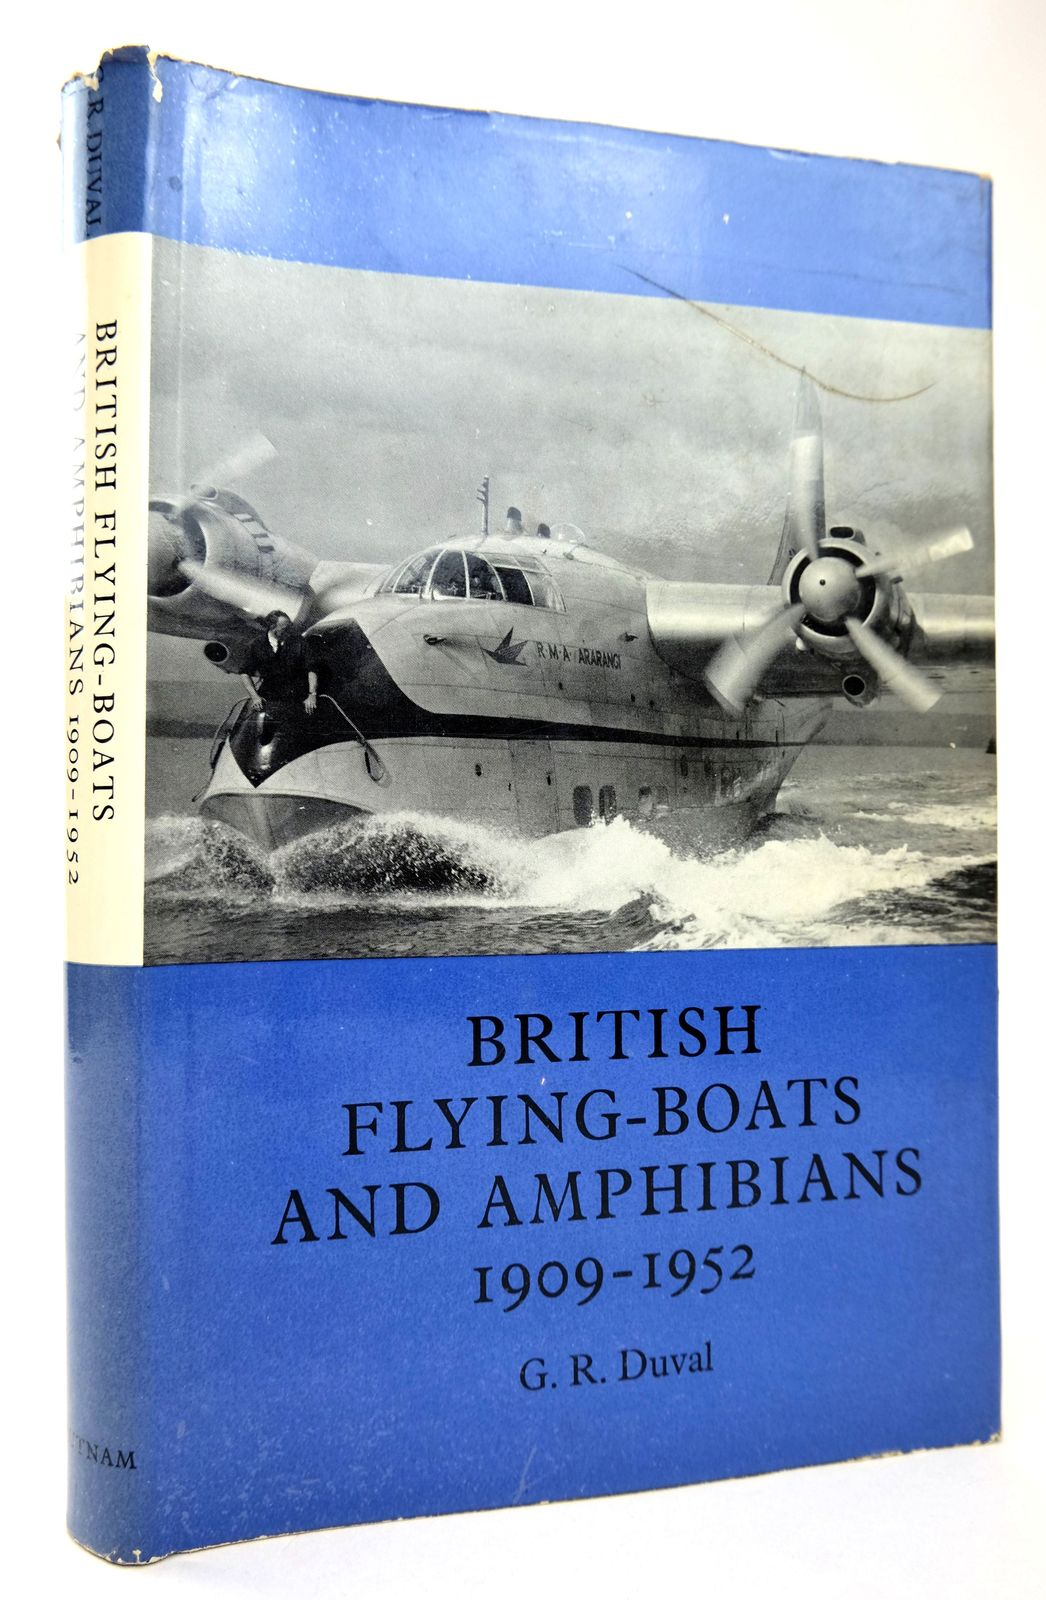 Photo of BRITISH FLYING-BOATS AND AMPHIBIANS 1909-1952 written by Duval, G.R. published by Putnam, Aero Publishers (STOCK CODE: 1818735)  for sale by Stella & Rose's Books